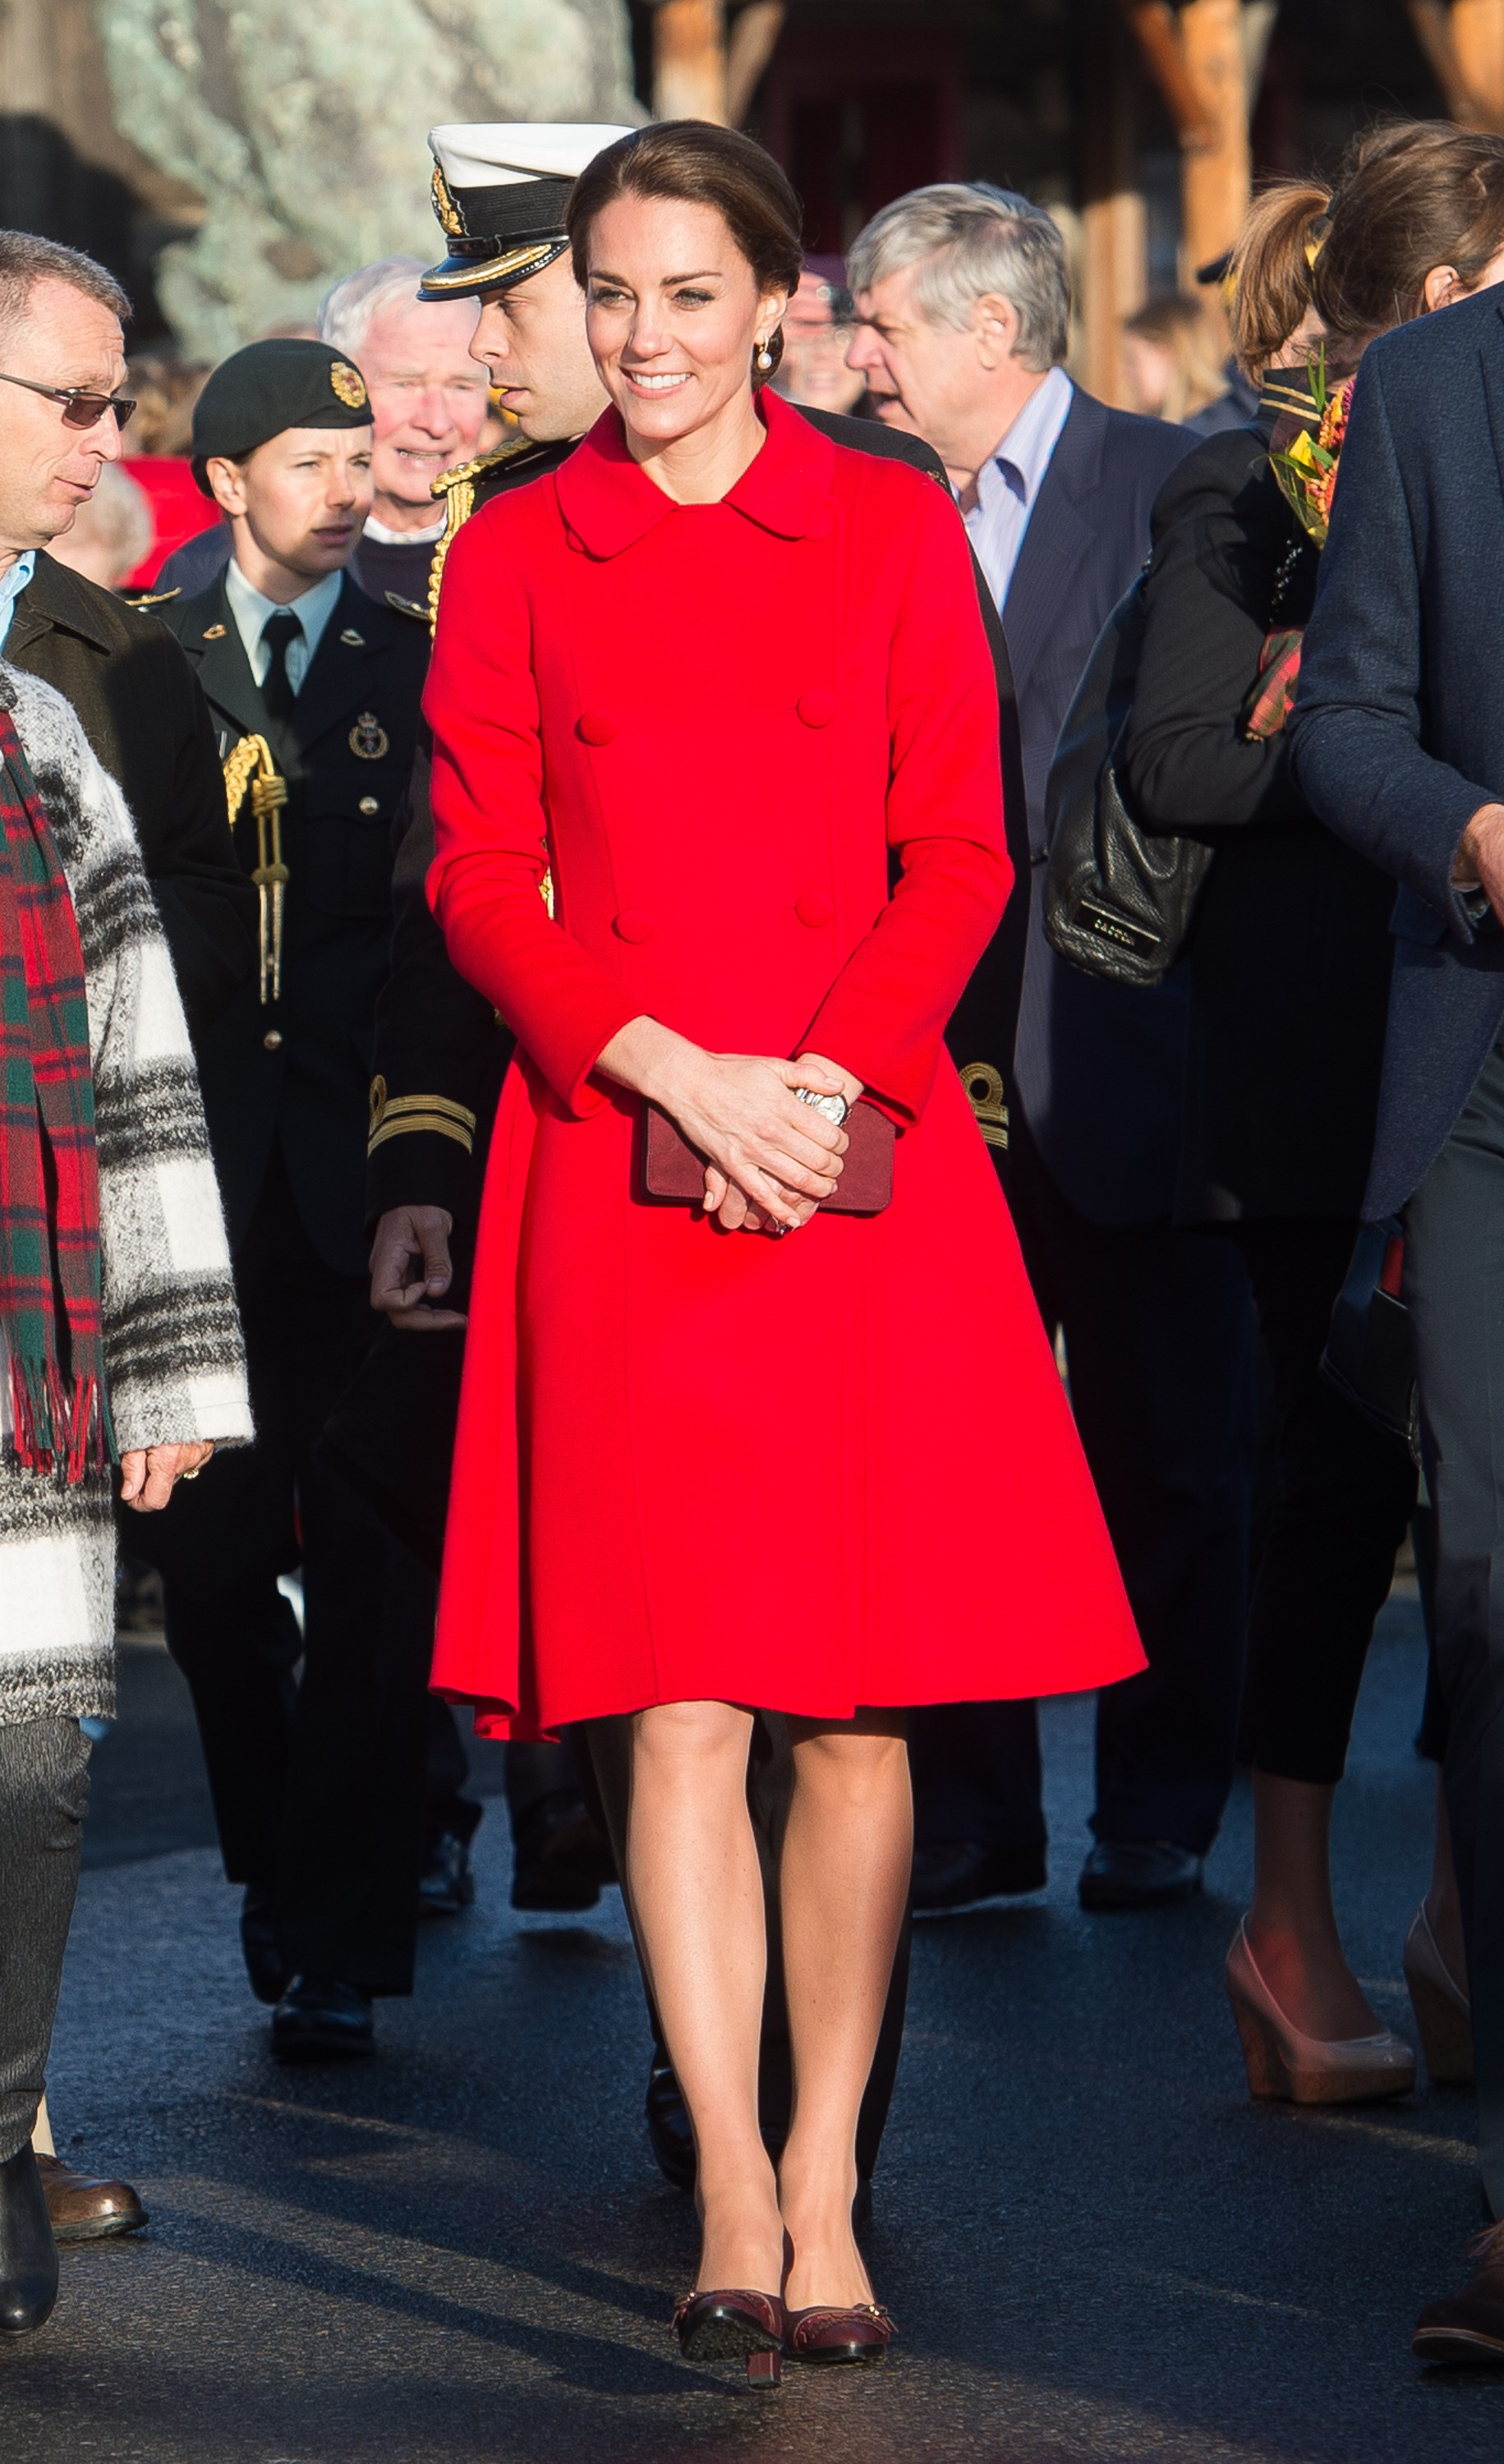 Catherine's stunning Carolina Herrera coat looked gorgeous paired with simple heels in September, as she and Prince William spent the fifth day of their royal tour in Canada day exploring the town of Whitehorse, where they sent a tweet in Morse code.